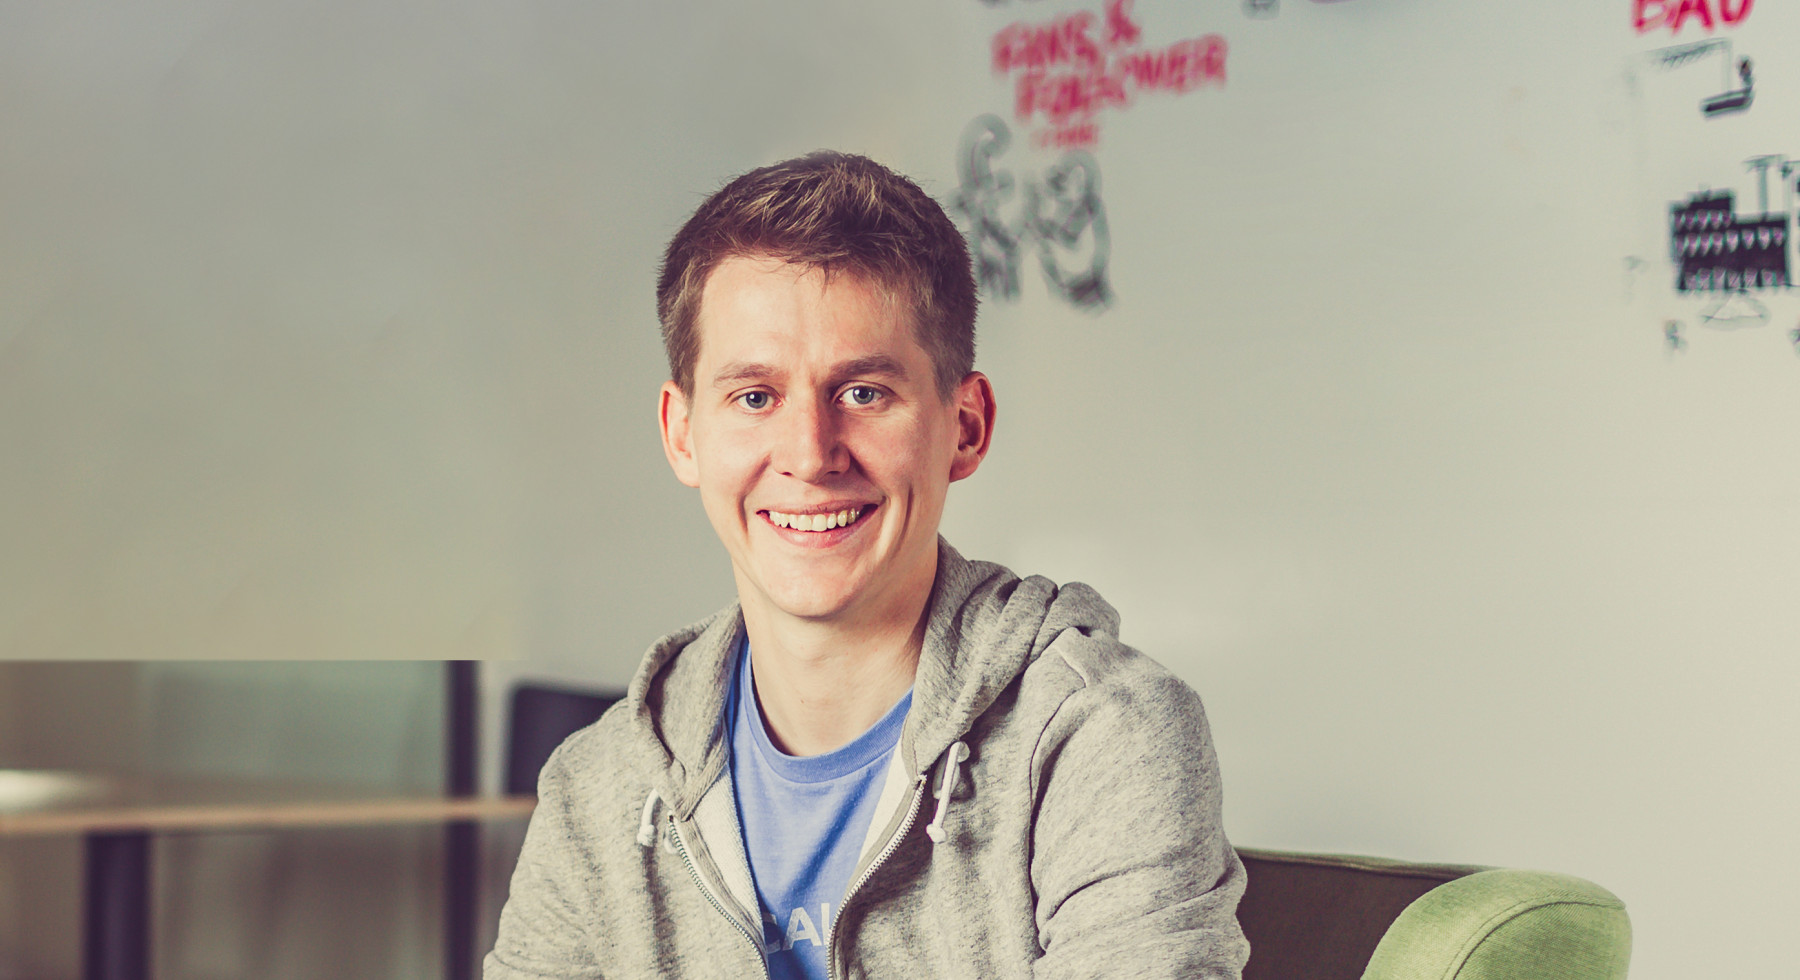 Portraitbild von Christian Hirsig (Powercoders.org)